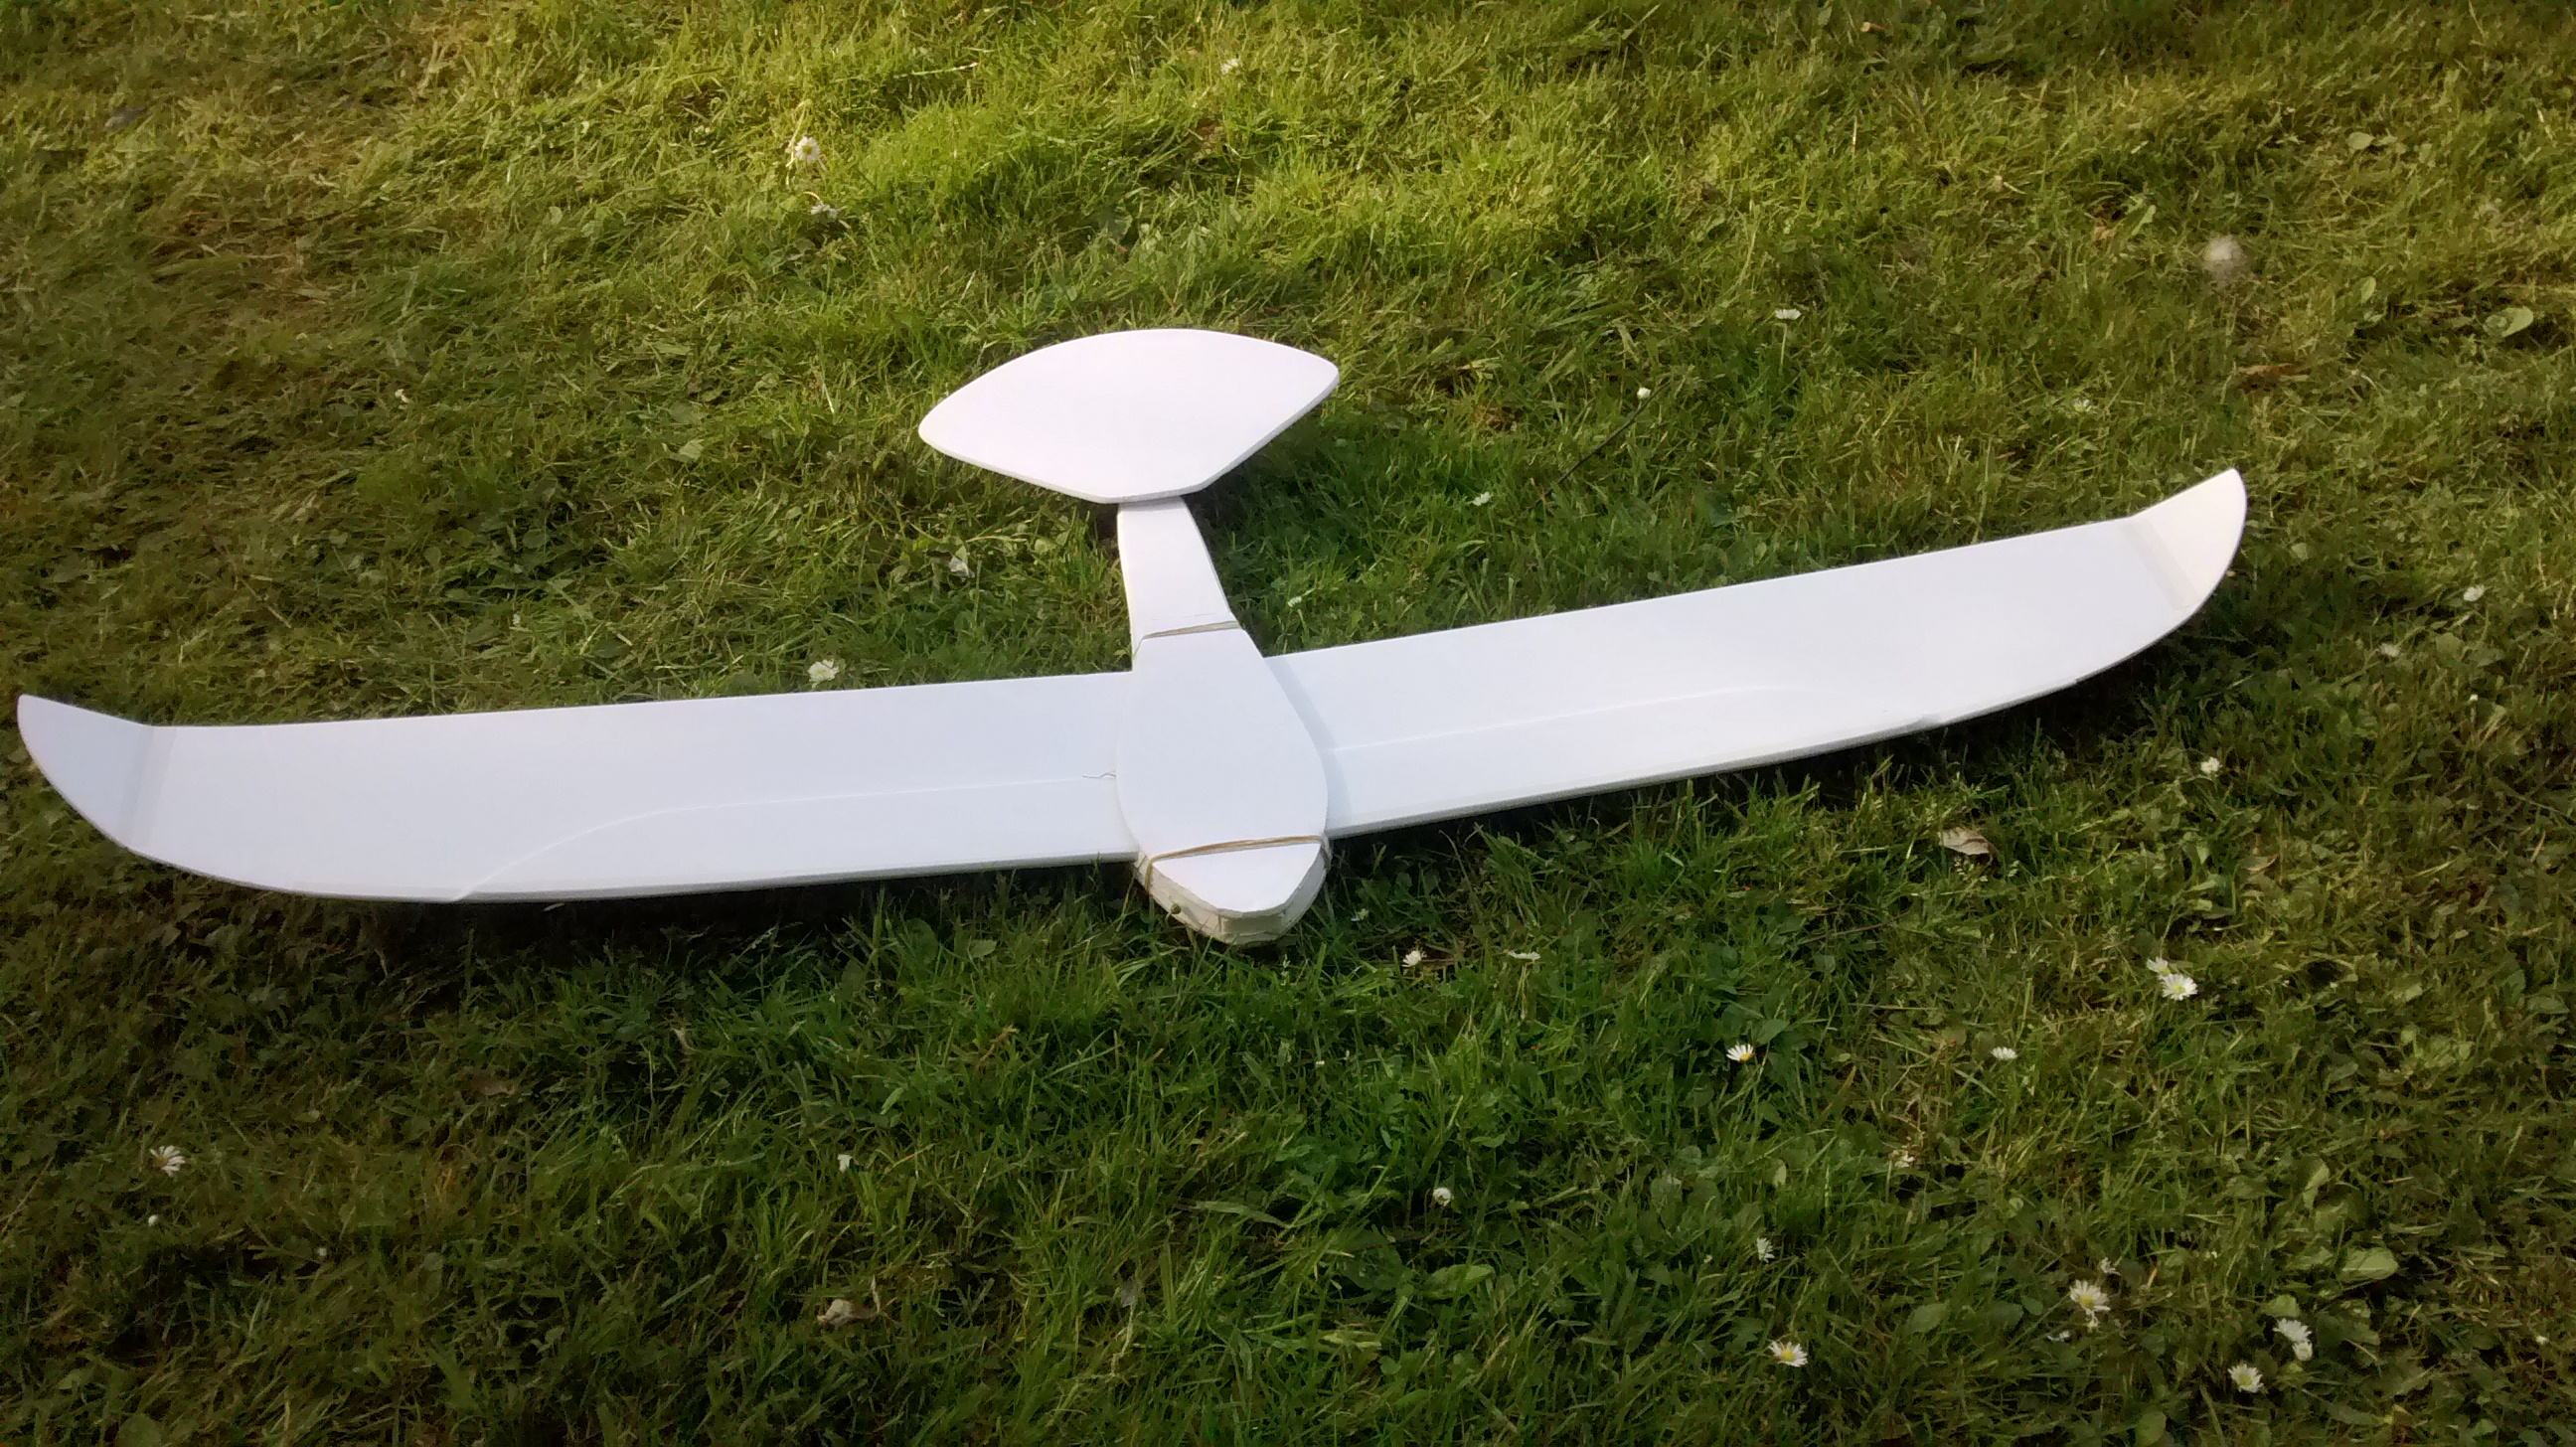 Picture of Enjoy Your Eagle-like Glider